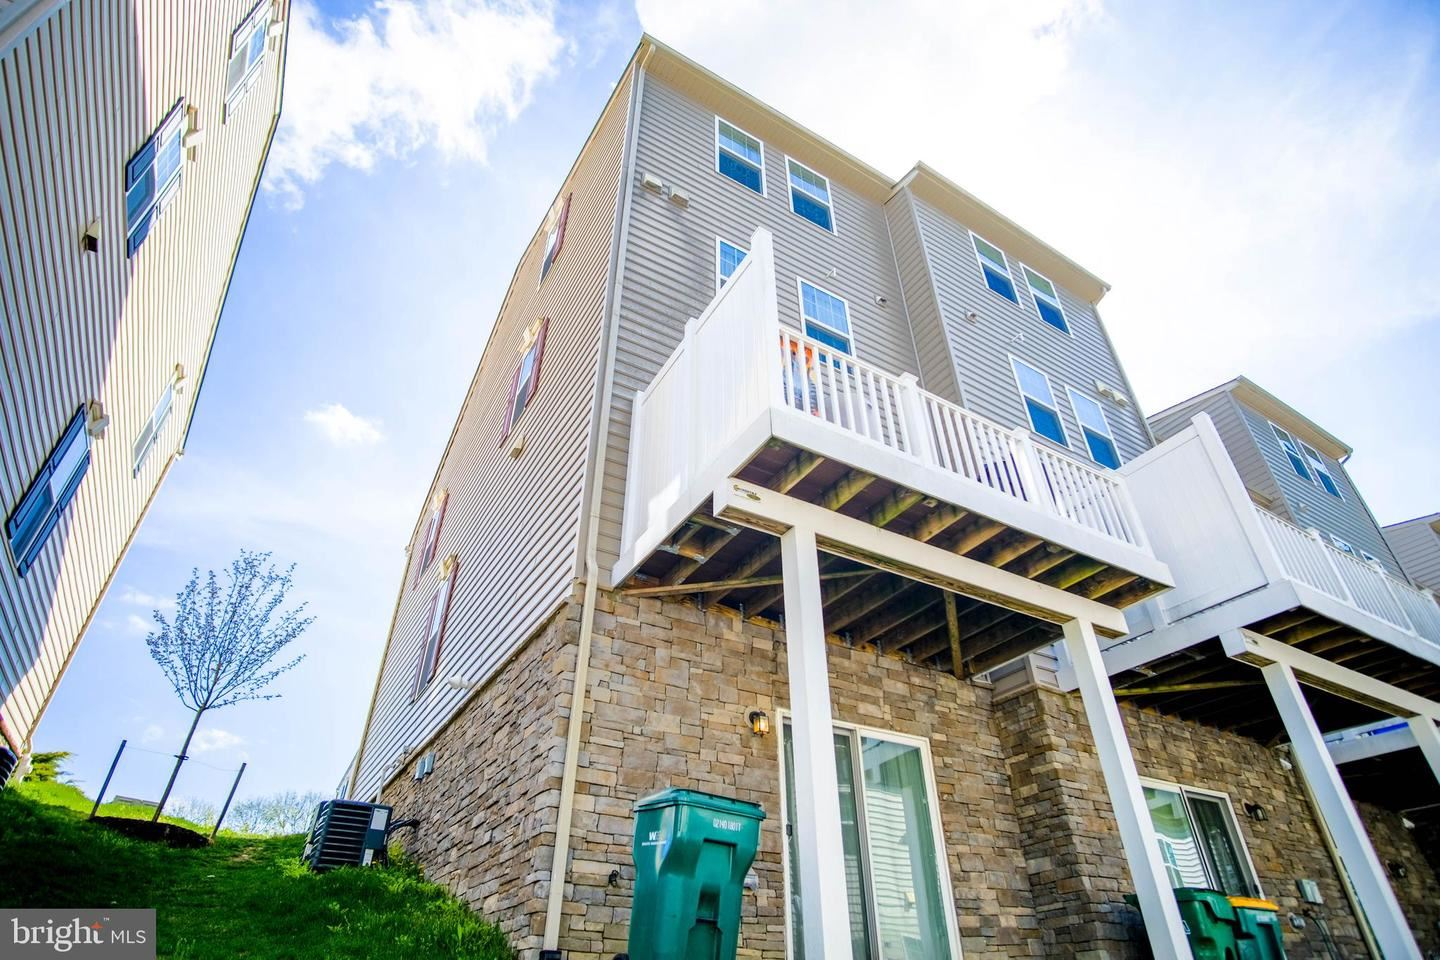 3130 PRISCILLAS VW, Ellicott City, MD 21043 - MLS#: MDHW291994